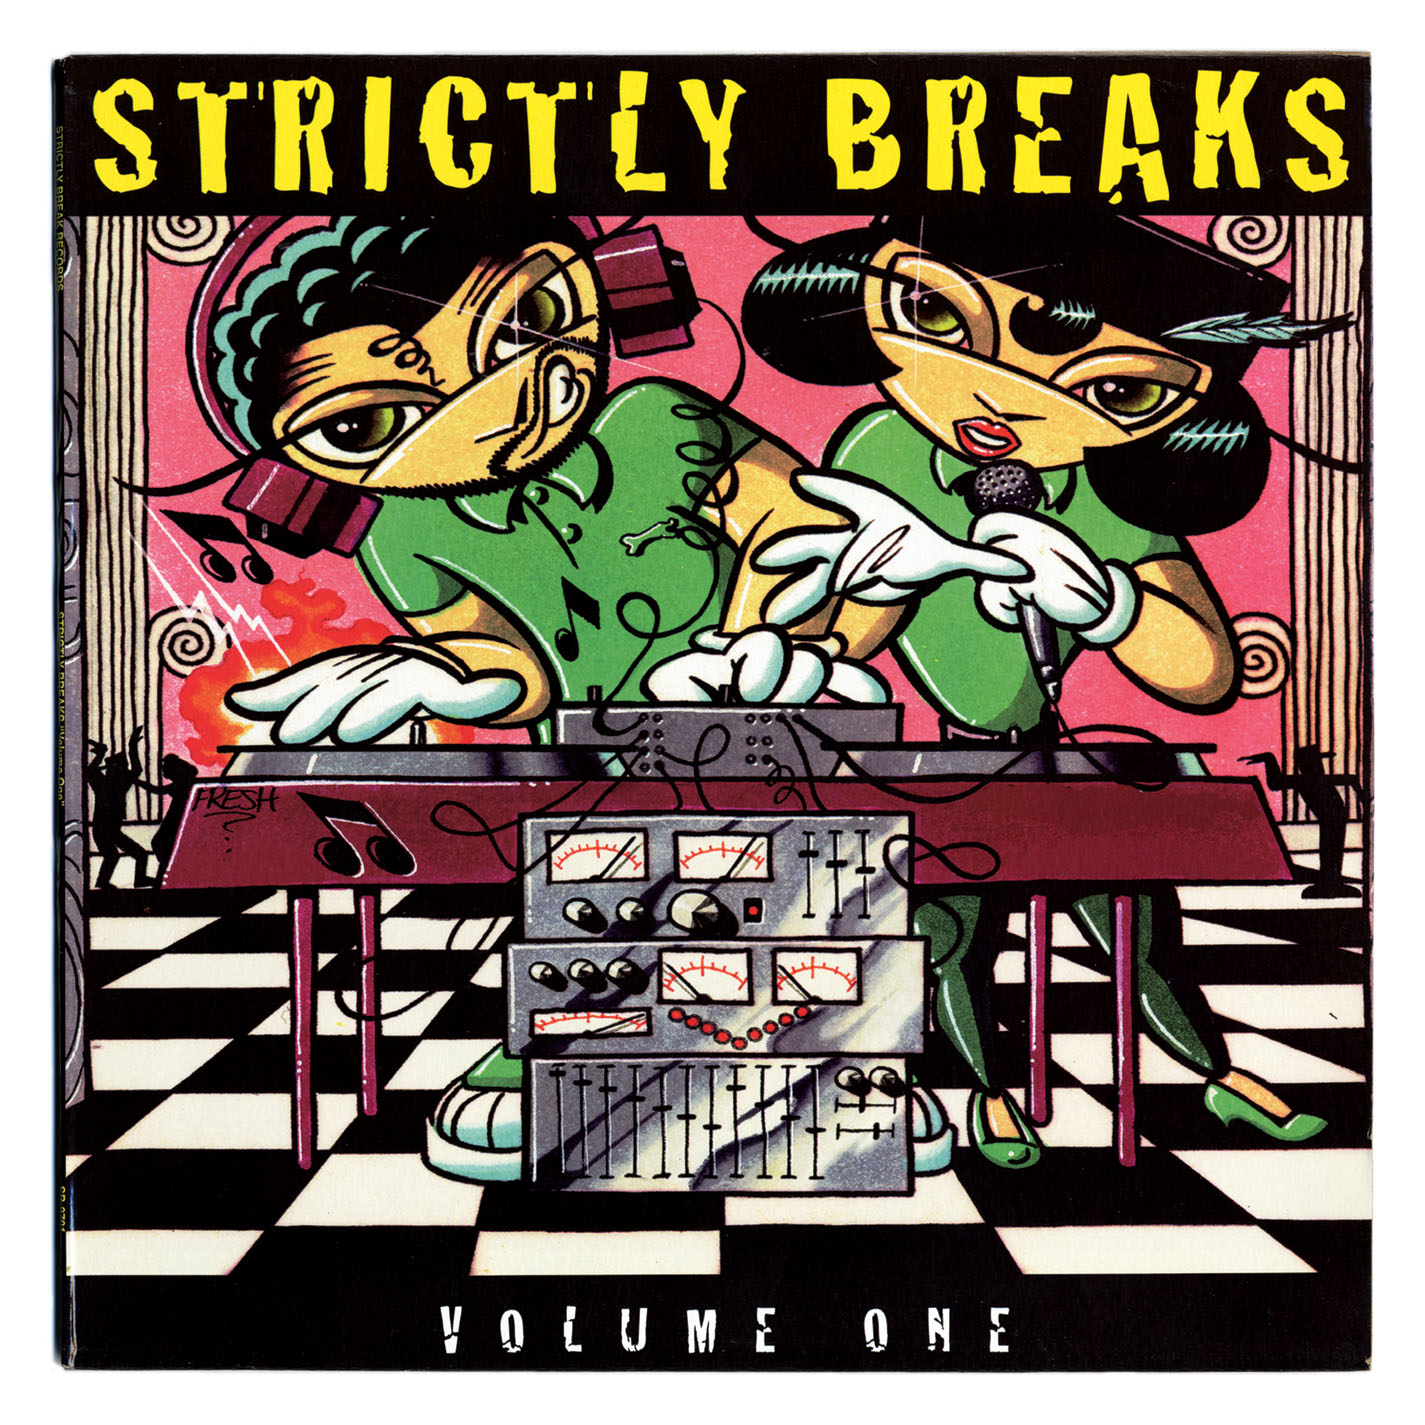 Strictly Breaks Volume 1 (1997) (CD) (320)